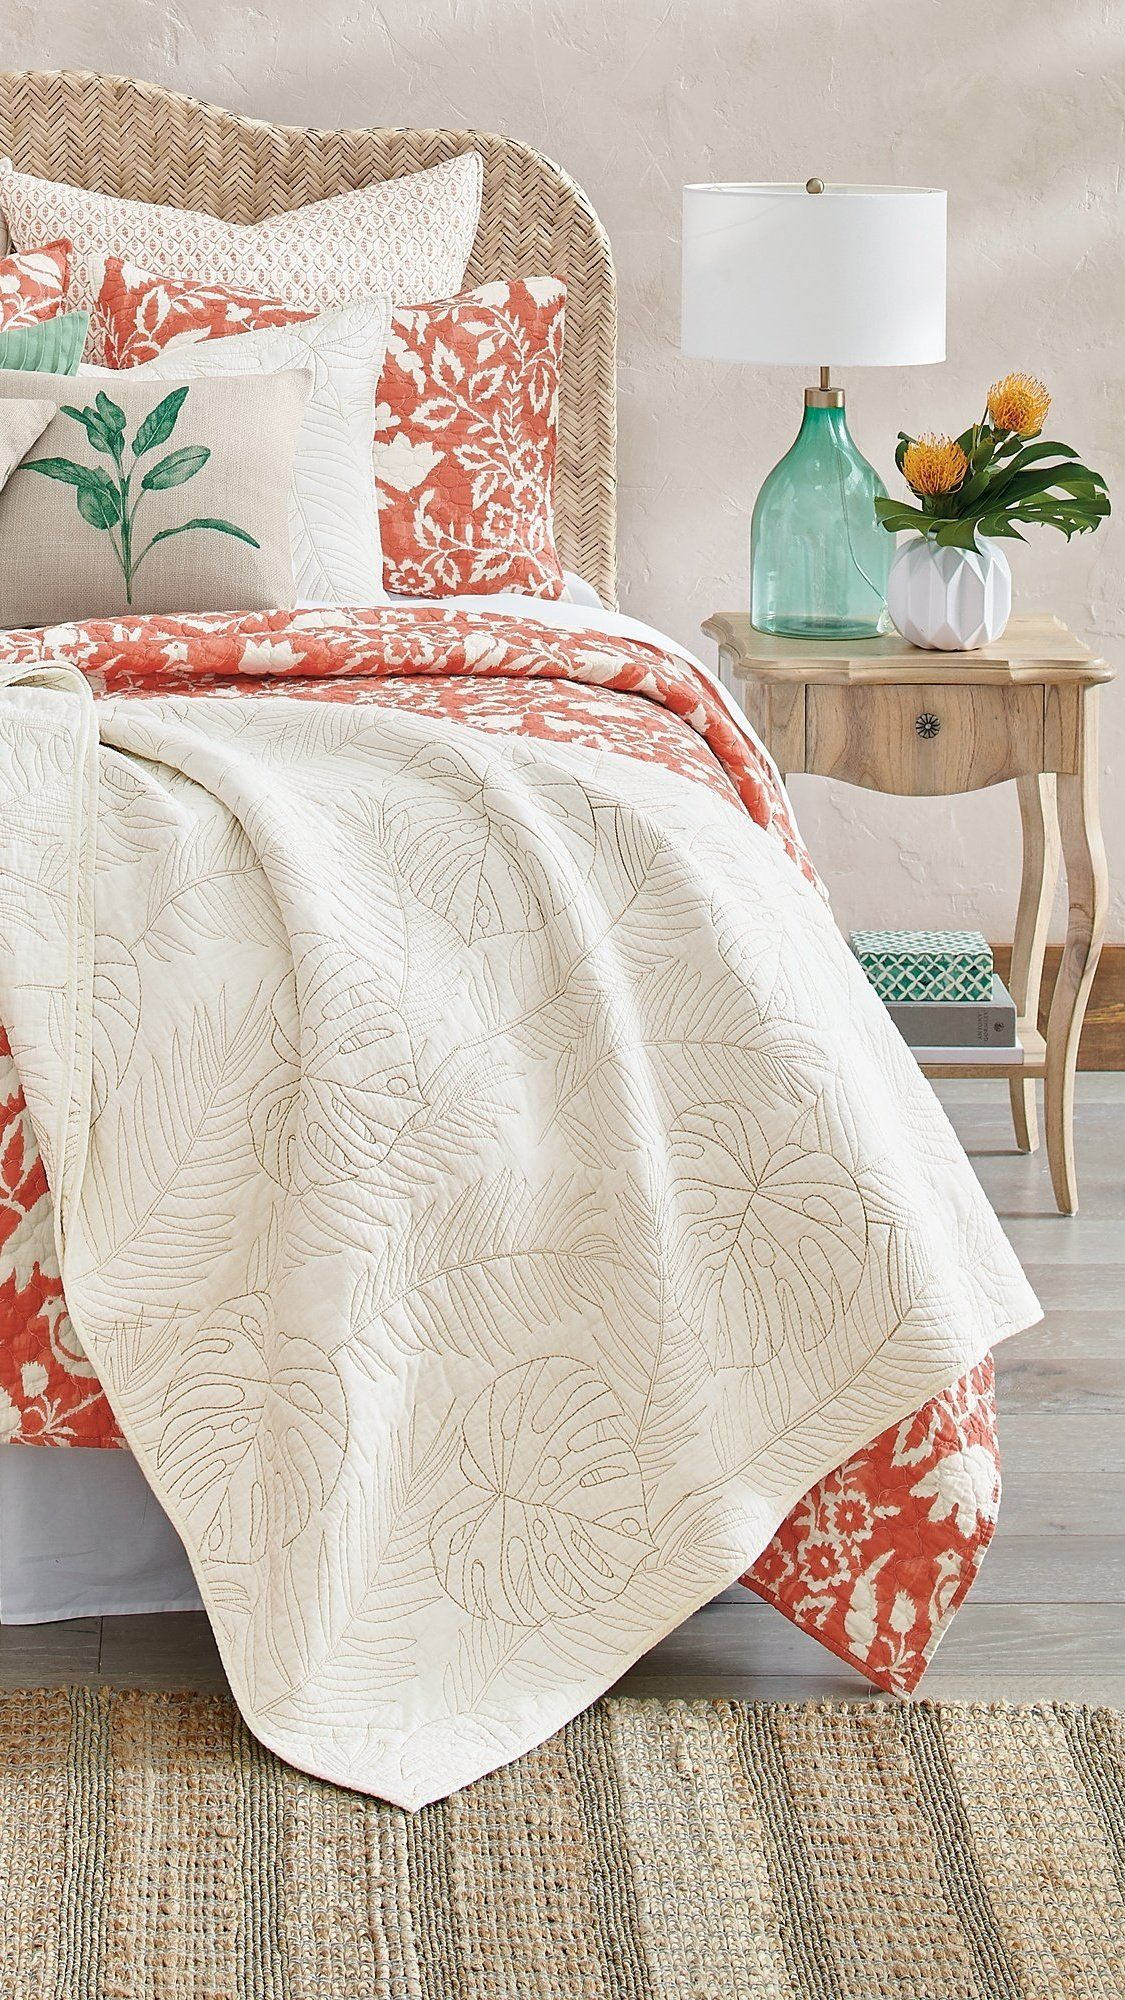 Priano Coral Quilt And Shams Grandin Road In 2020 Coral Bedding Coral Quilt Coral Bedroom